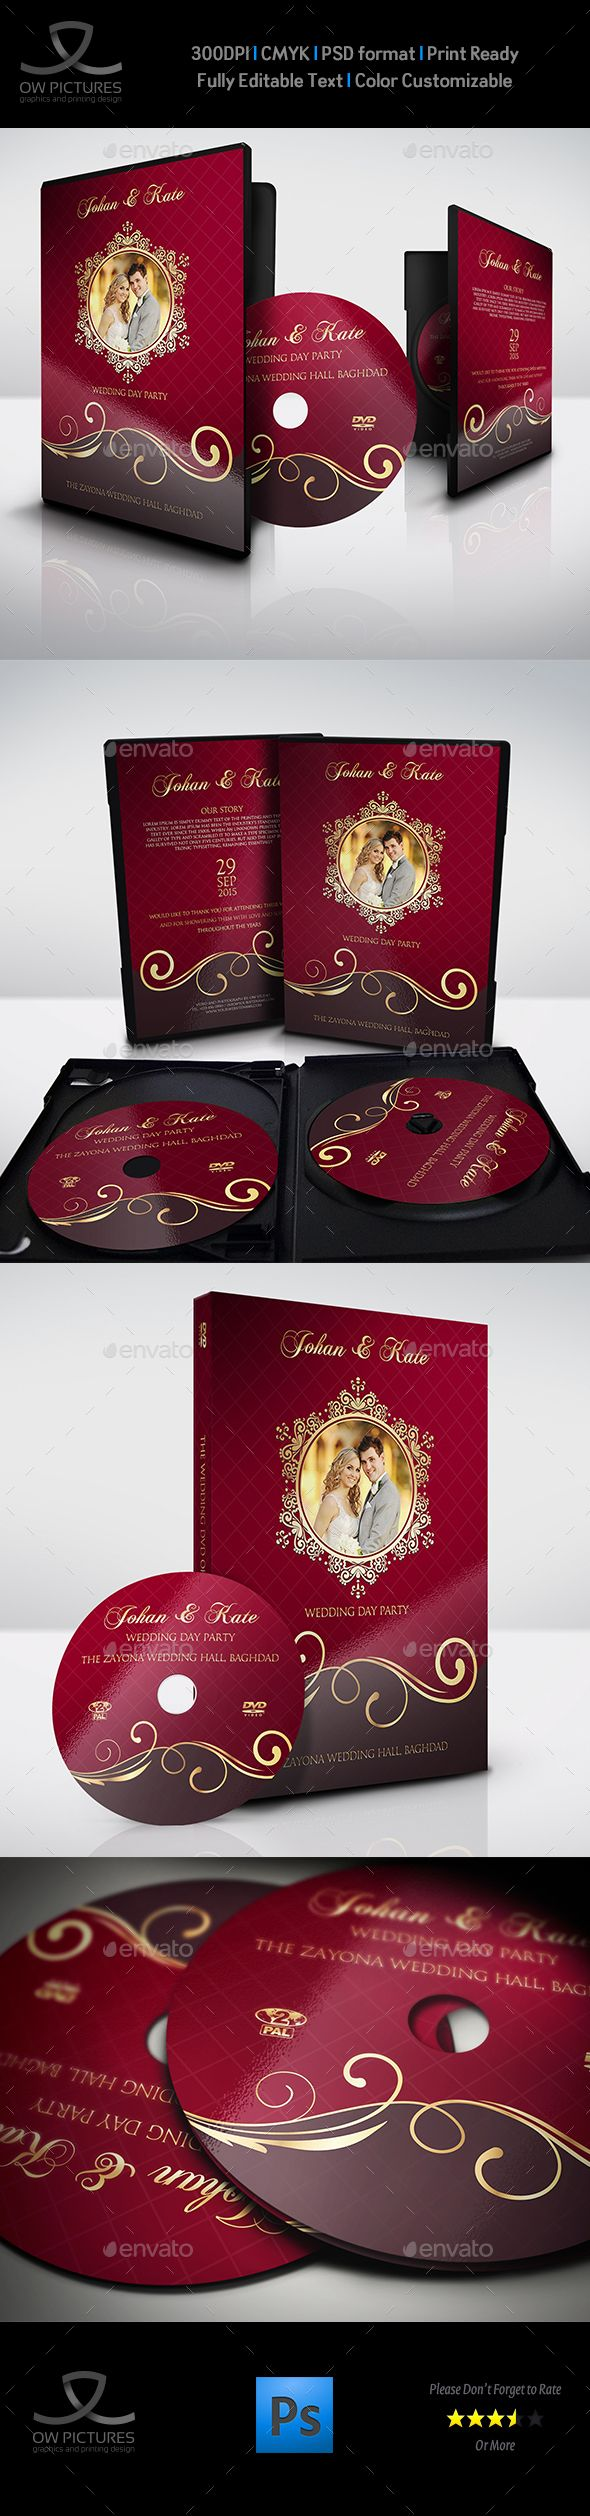 Wedding DVD Cover and DVD Label Template Vol.9 - #CD & #DVD Artwork Print #Templates Download here: https://graphicriver.net/item/wedding-dvd-cover-and-dvd-label-template-vol9/19347846?ref=alena994